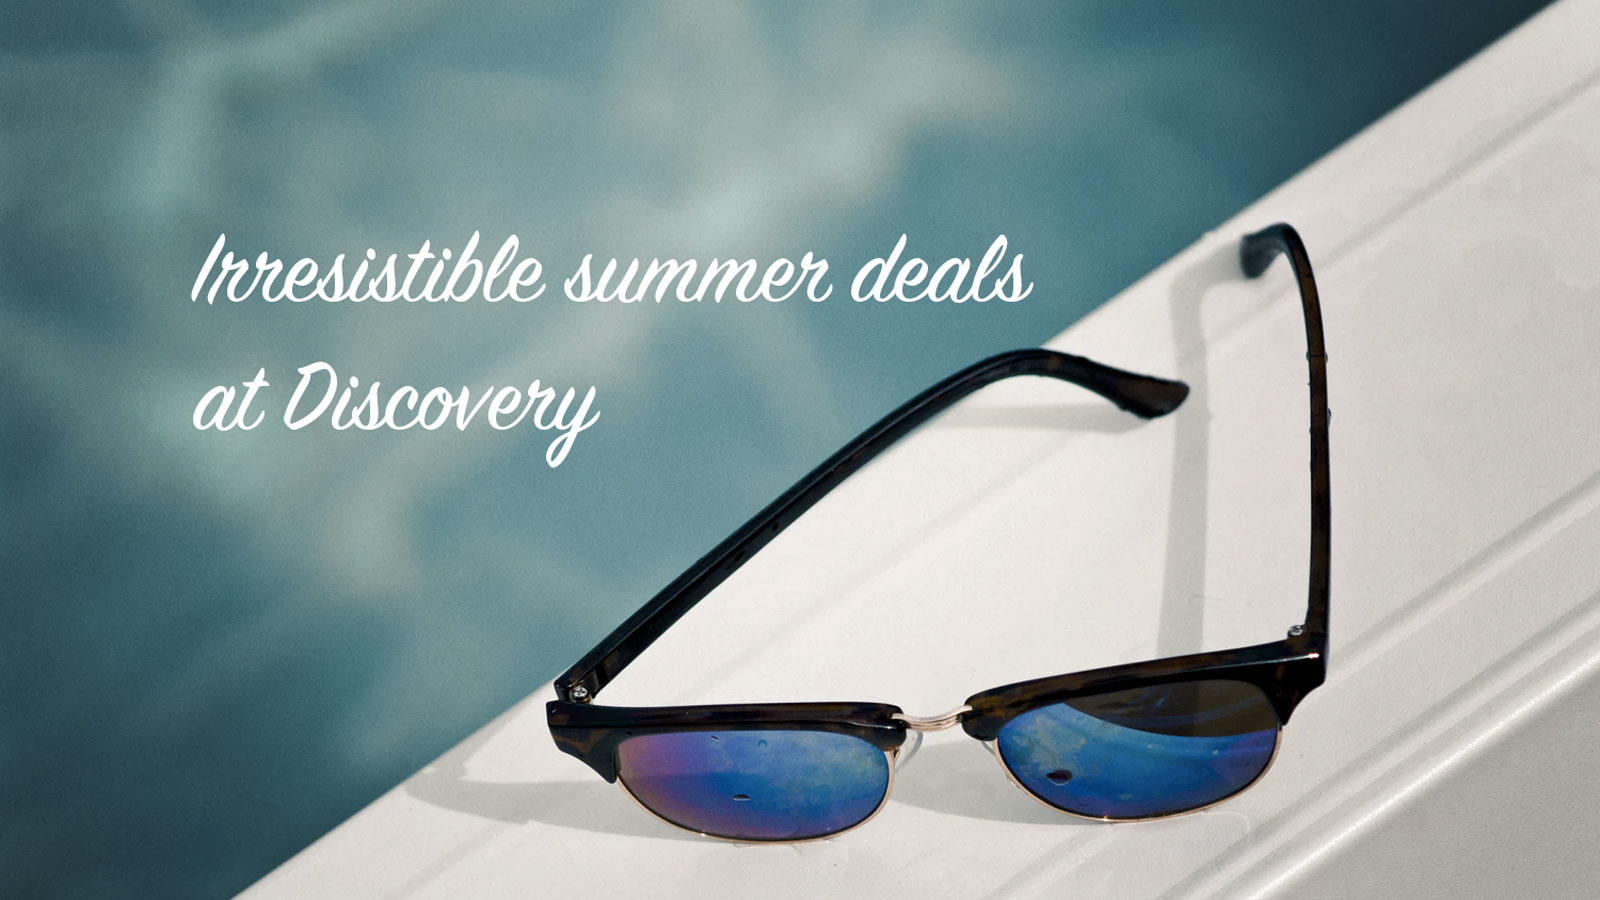 Enjoy irresistible summer deals from Discovery's hotels and resorts